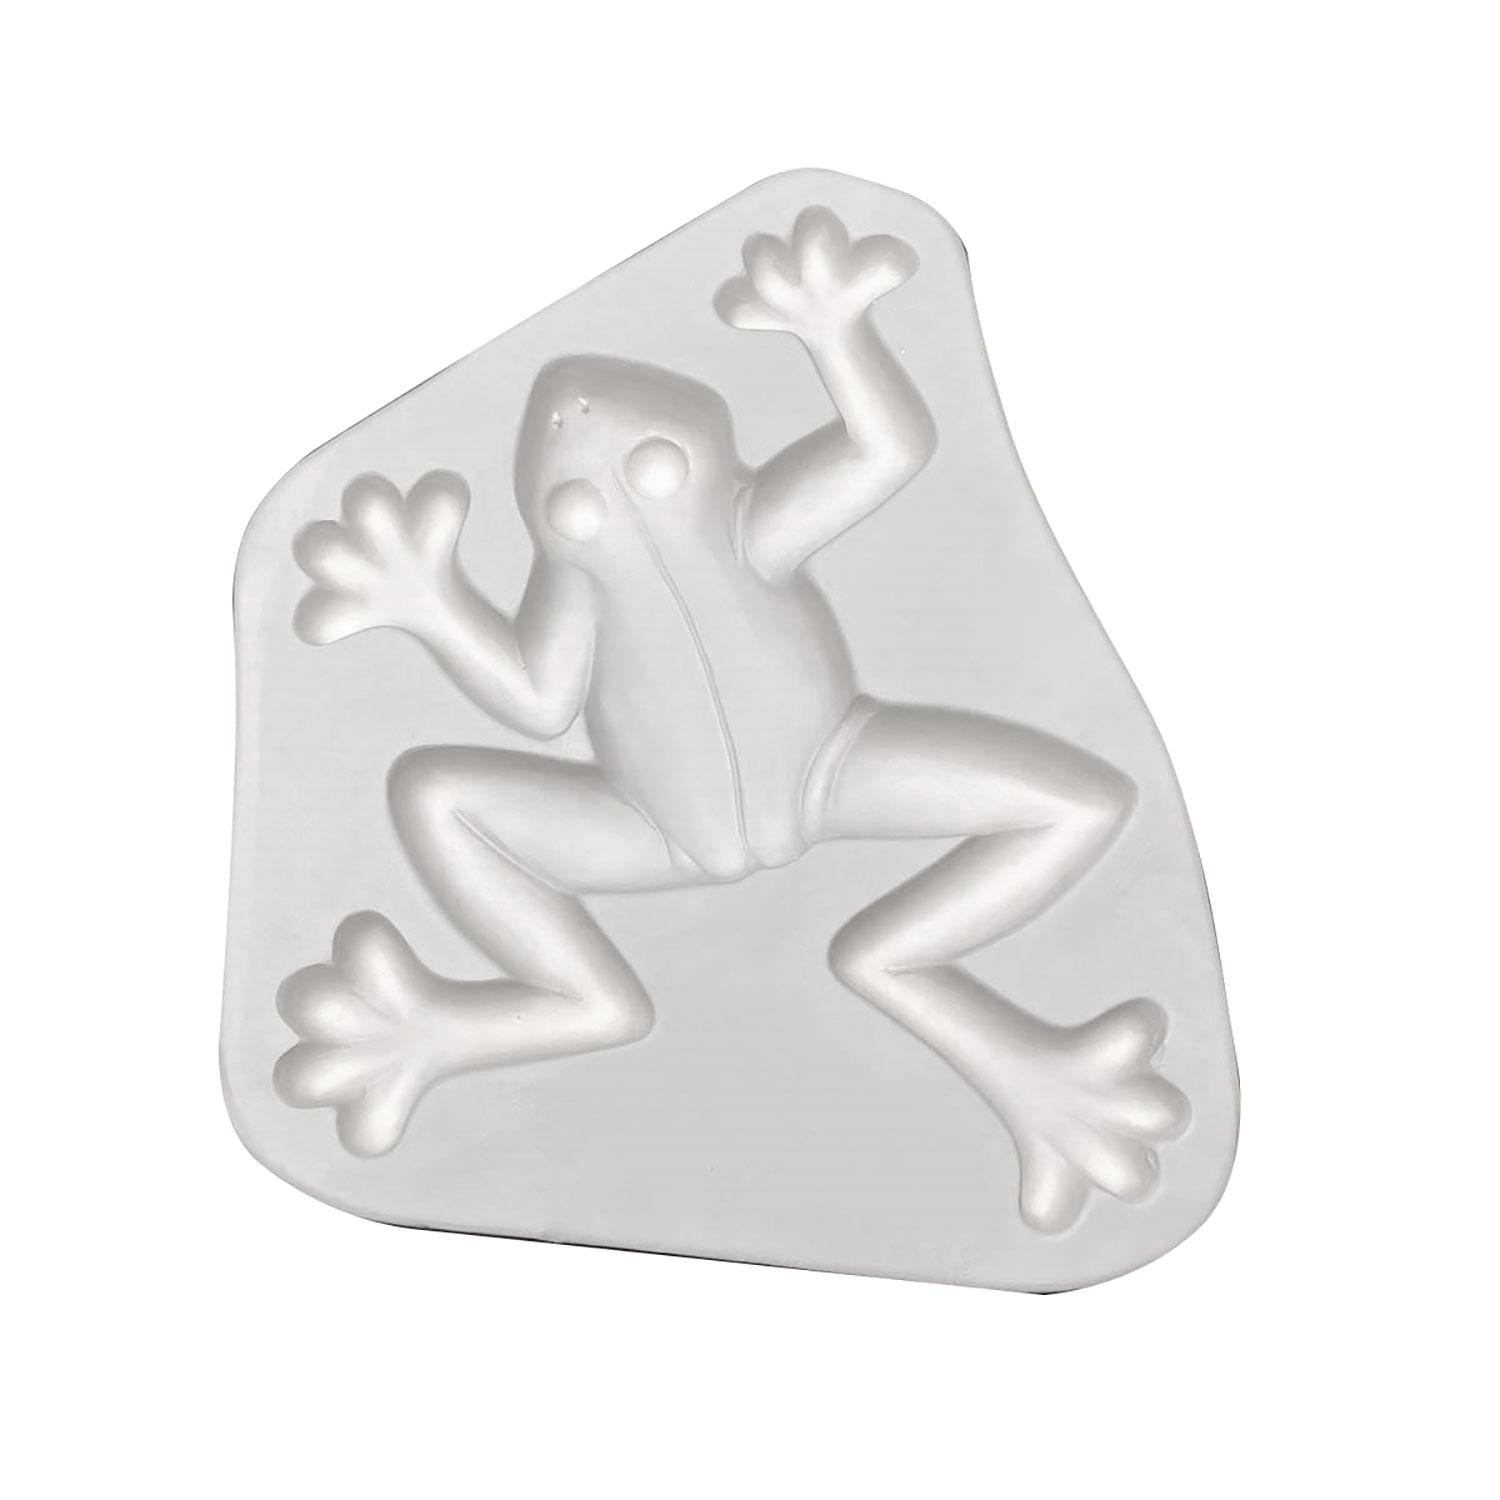 Frog Casting Mold